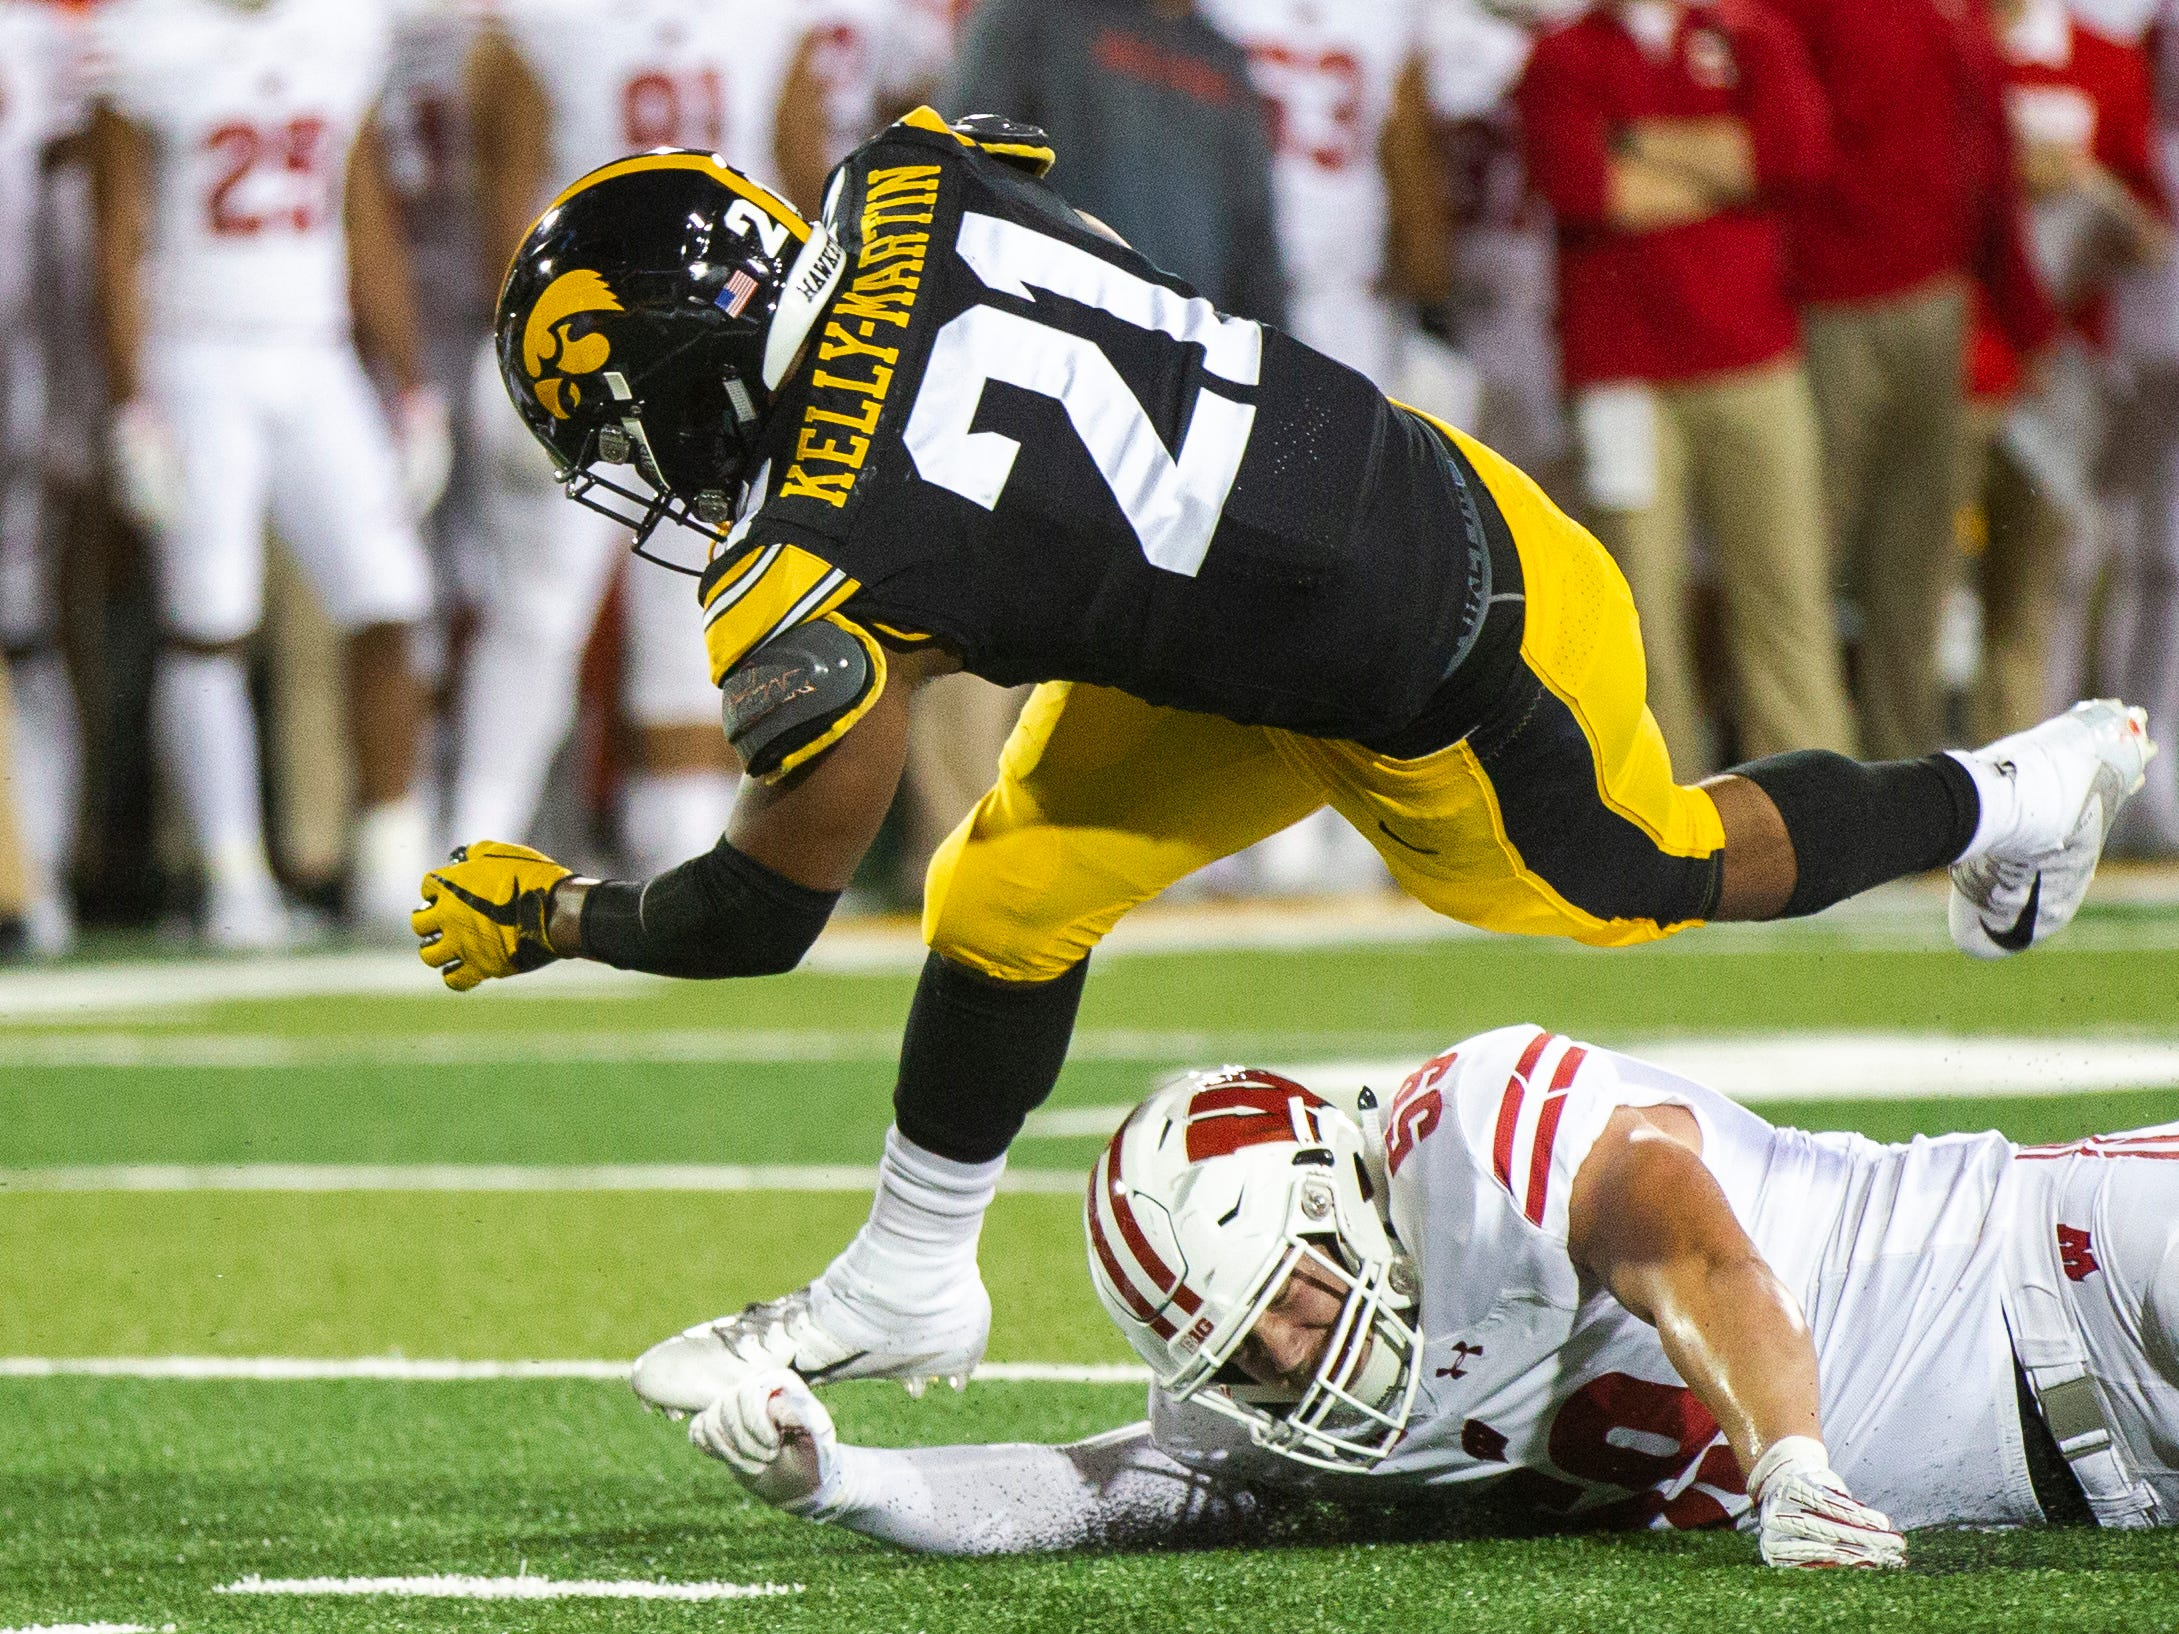 Iowa running back Ivory Kelly-Martin (21) gets tripped up by Wisconsin linebacker Tyler Johnson (59) during an NCAA football game on Saturday, Sept. 22, 2018, at Kinnick Stadium in Iowa City.